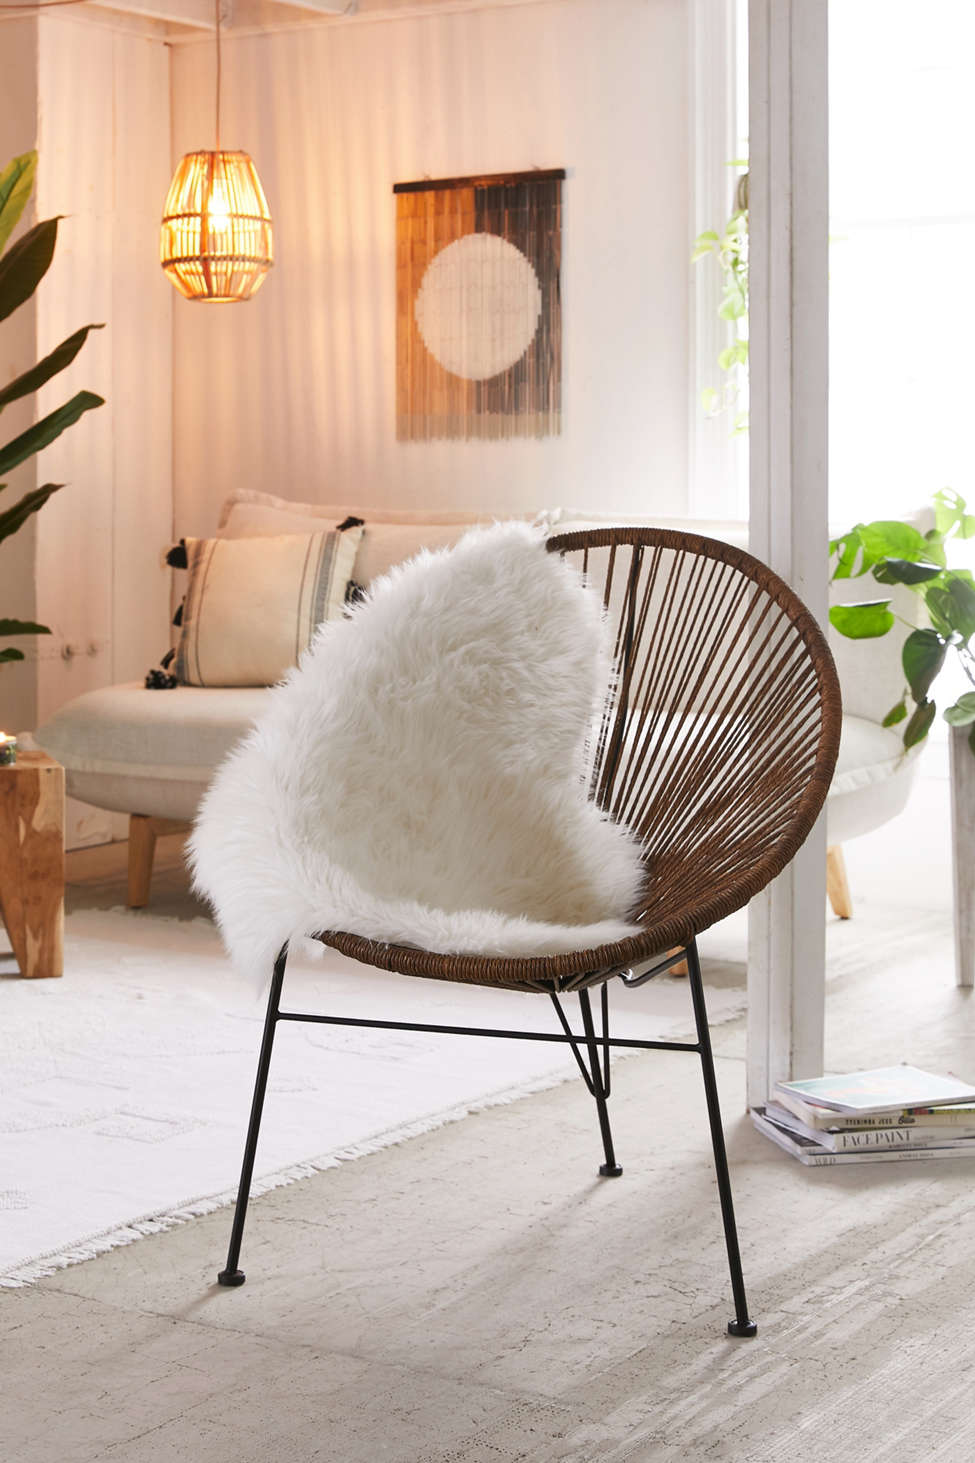 Slide View: 1: Alma Round Chair